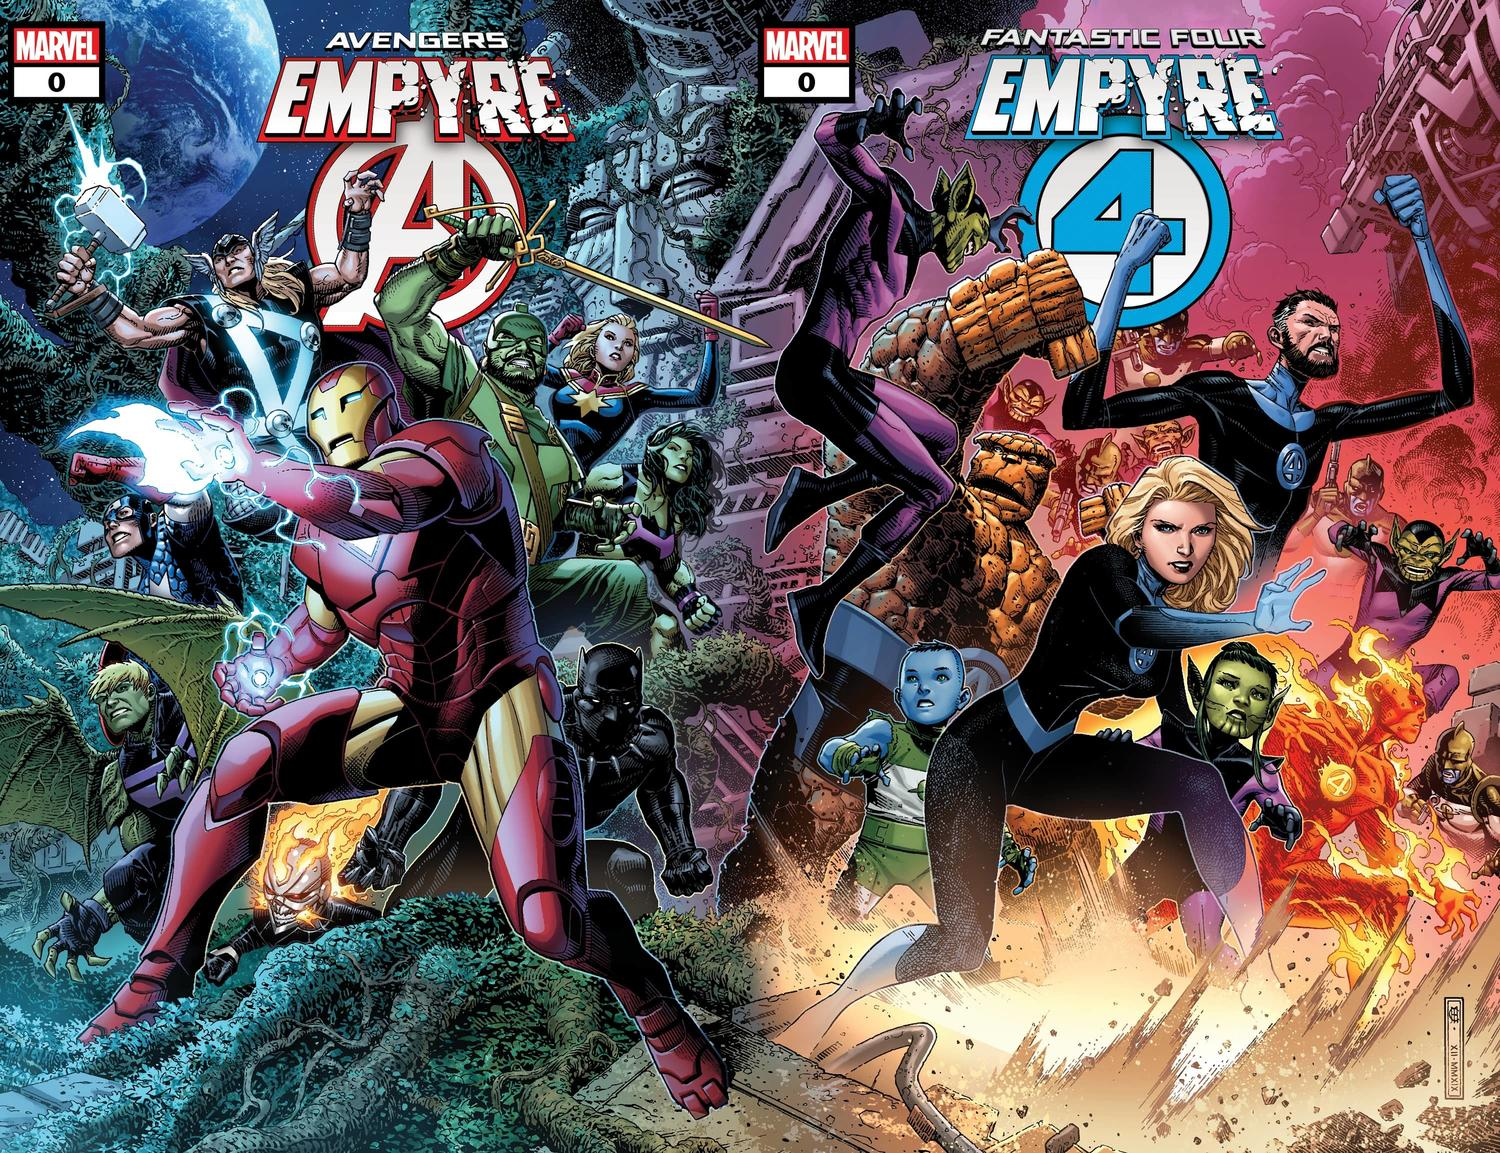 EMPYRE #0: AVENGERS and EMPYRE #0: FANTASTIC FOUR